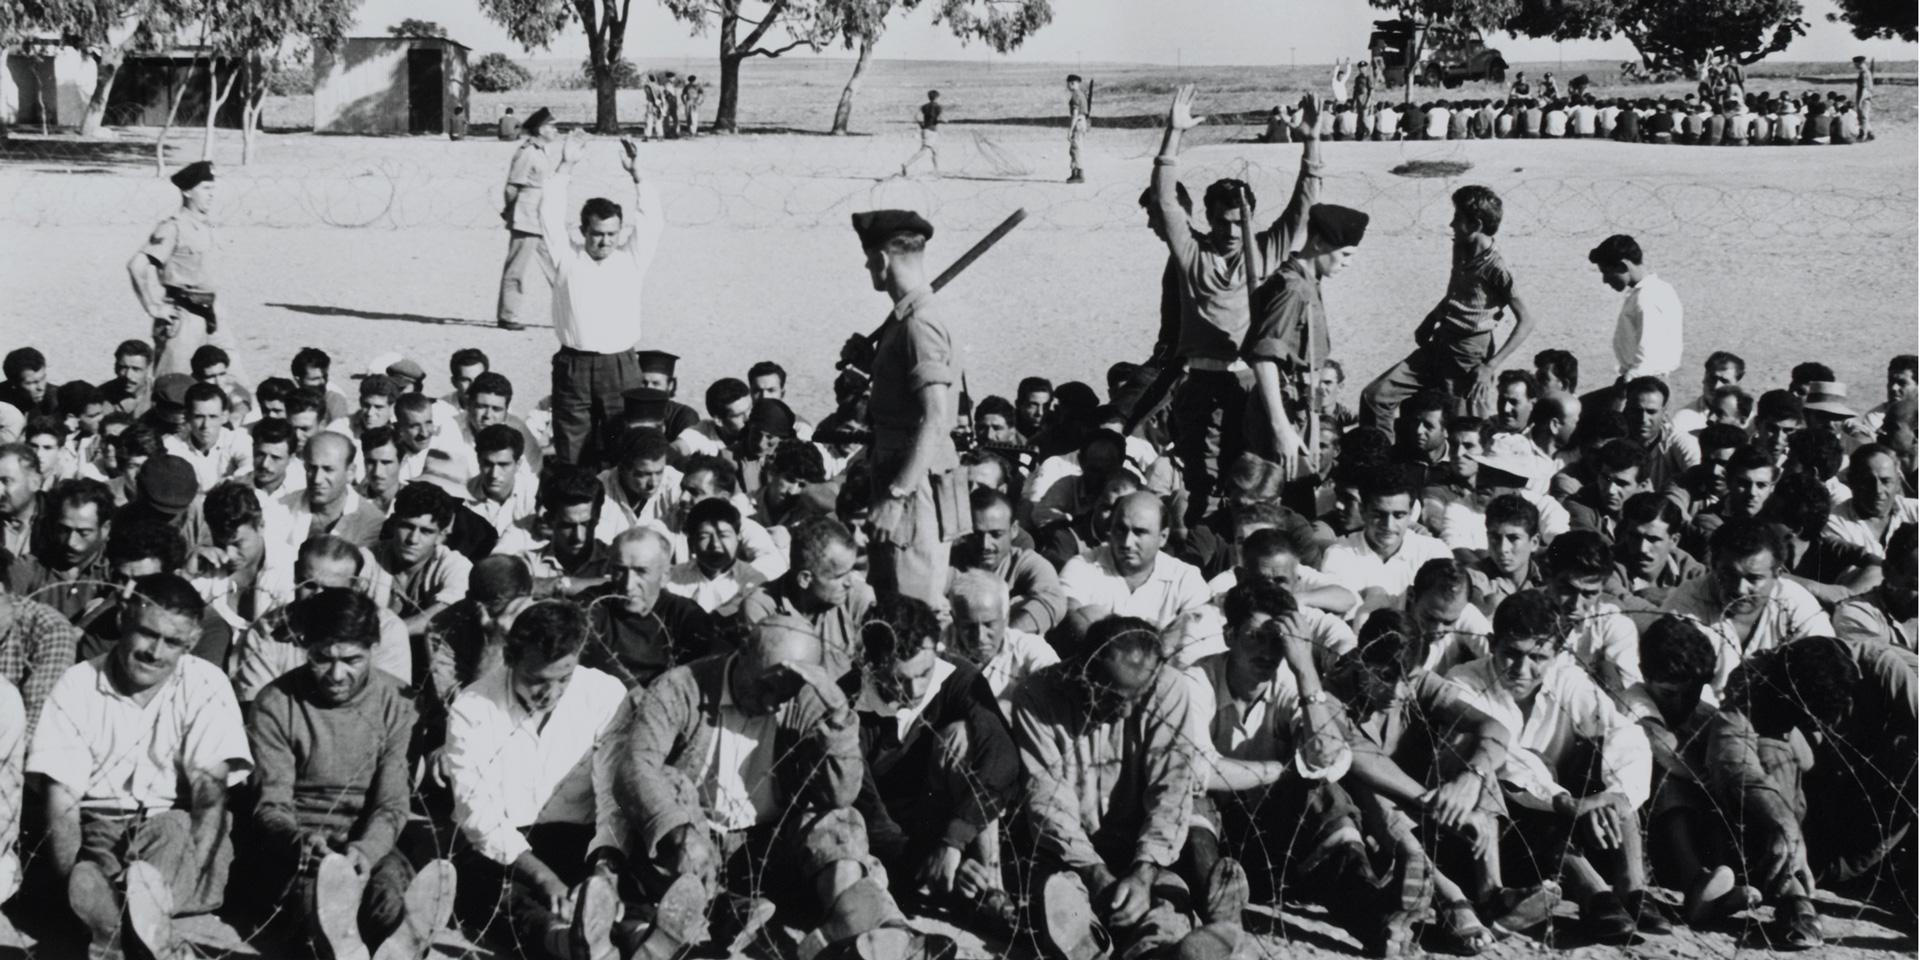 A round up operation near Famagusta, Cyprus, 9 October 1958